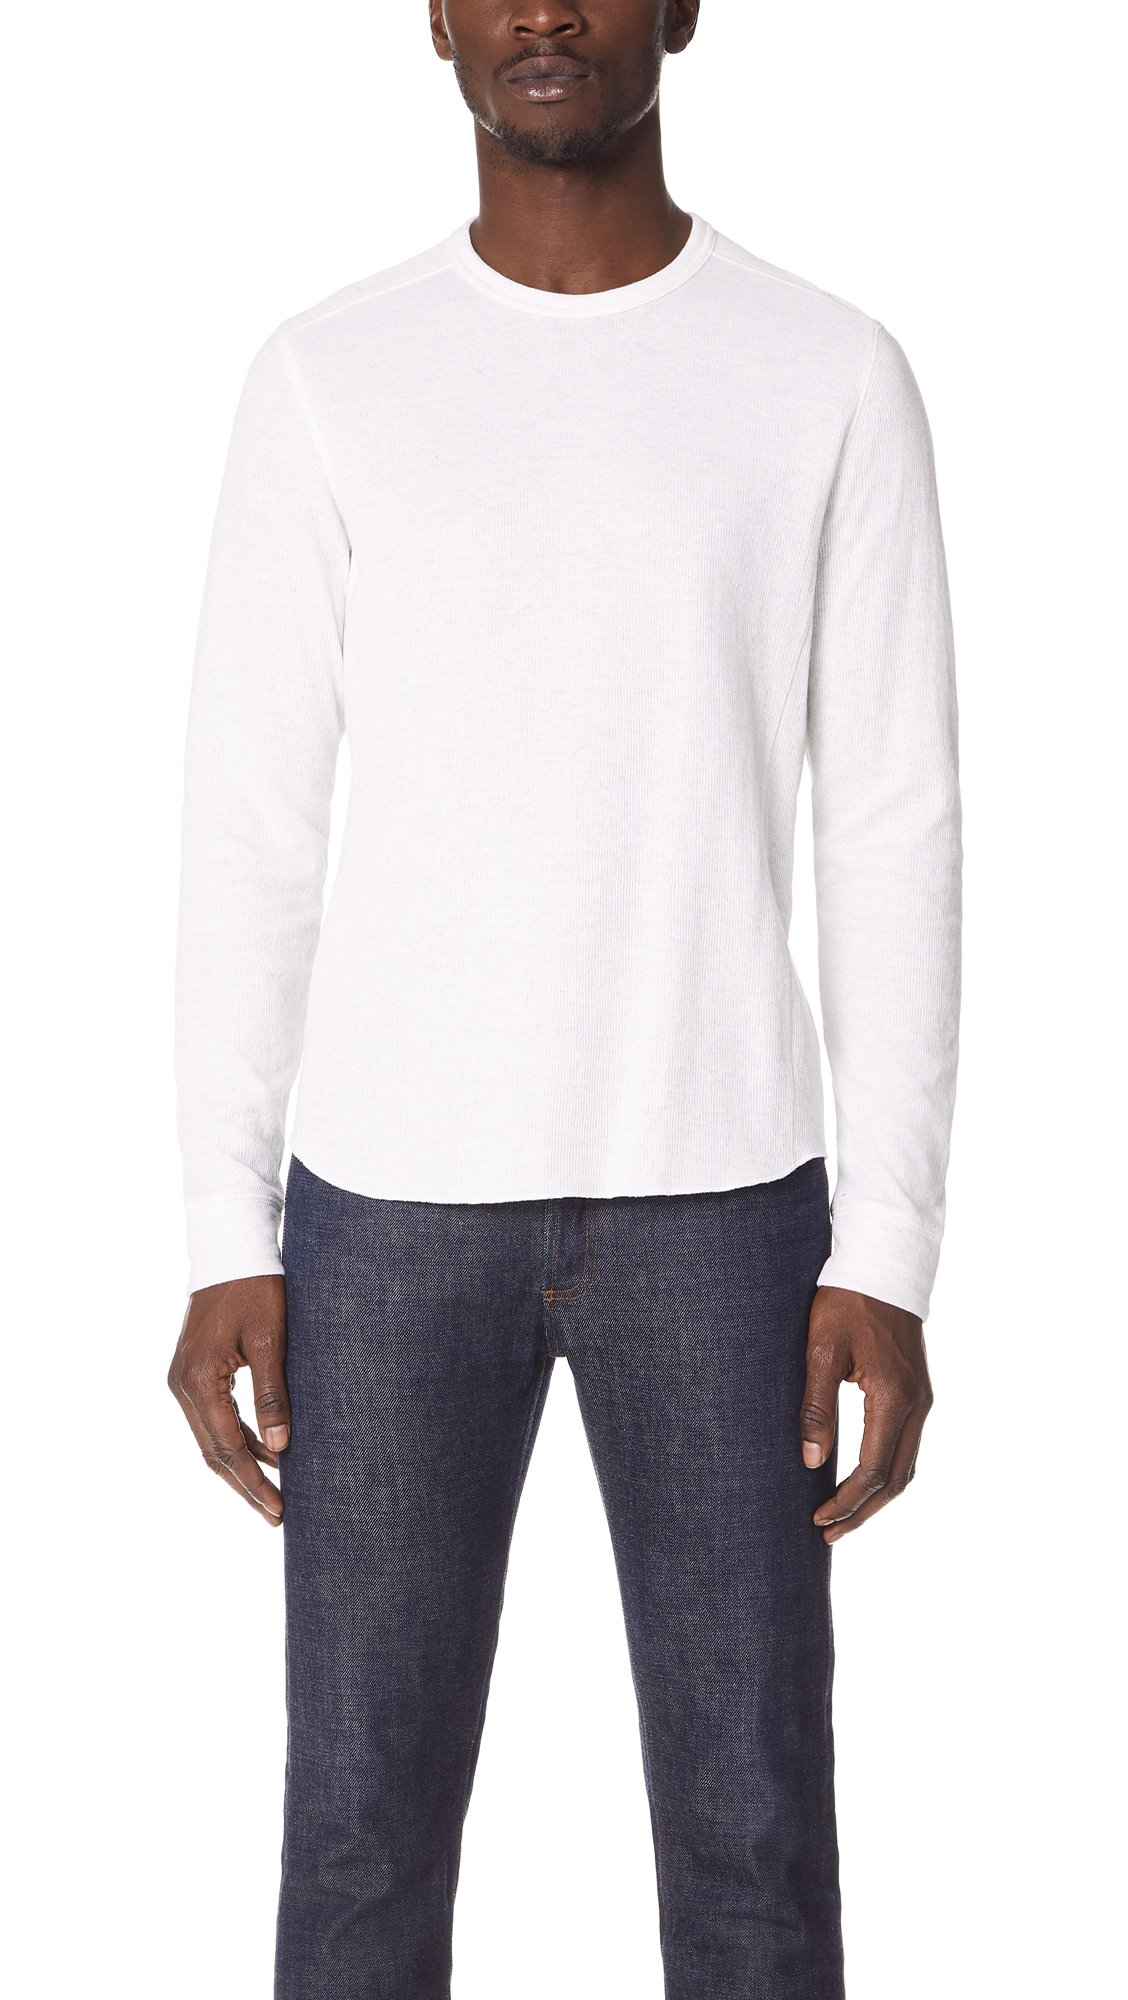 Vince Men's Double Knit Long Sleeve Crew Tee, Heather Optic White, Small